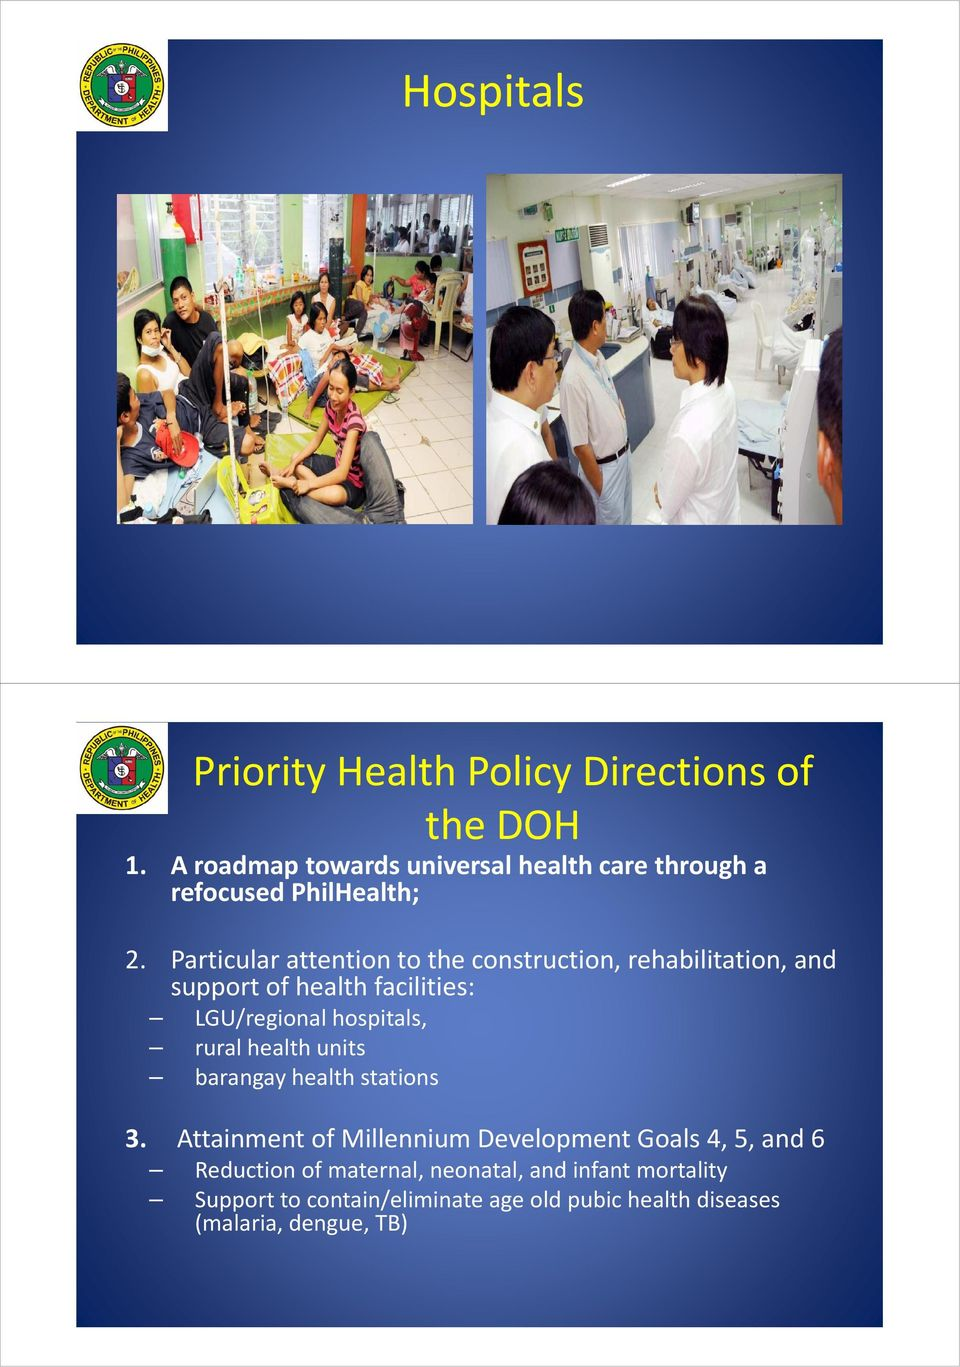 Particular attention to the construction, rehabilitation, and support of health facilities: LGU/regional hospitals, rural